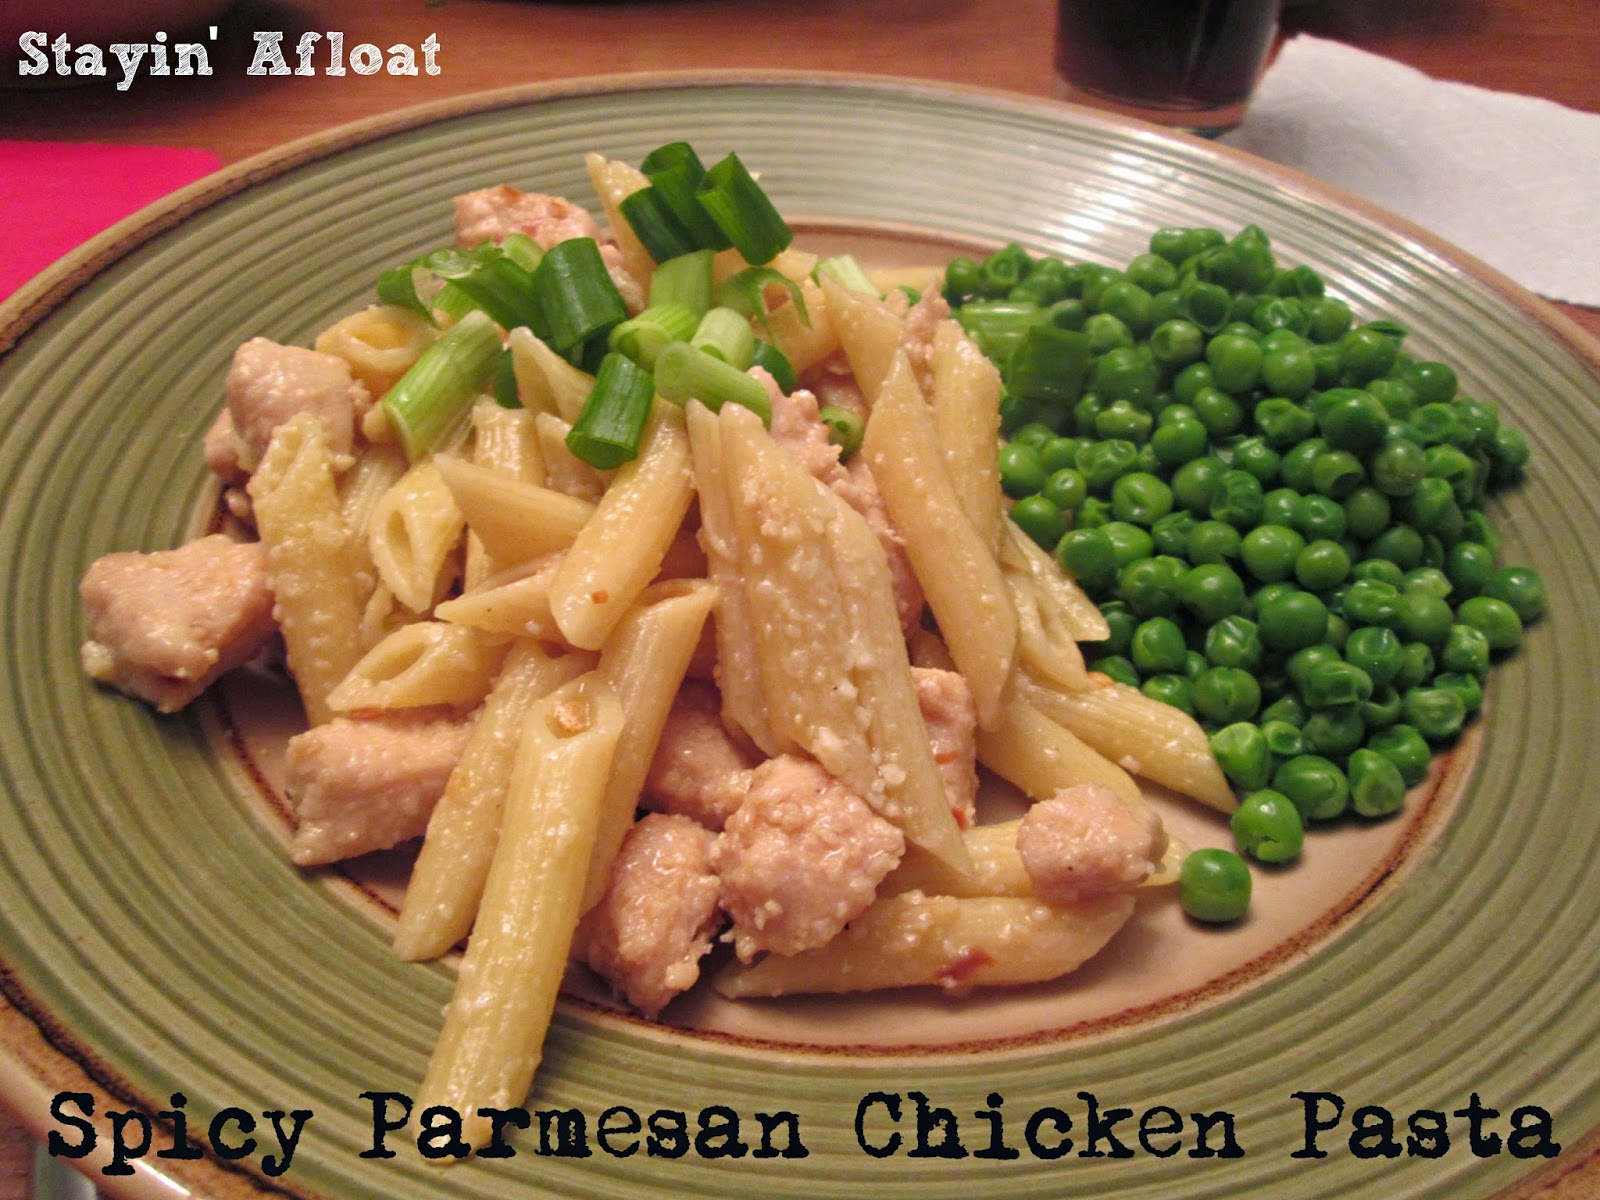 http://www.stayin-afloat.com/p/spicy-parmesan-chicken-pasta.html